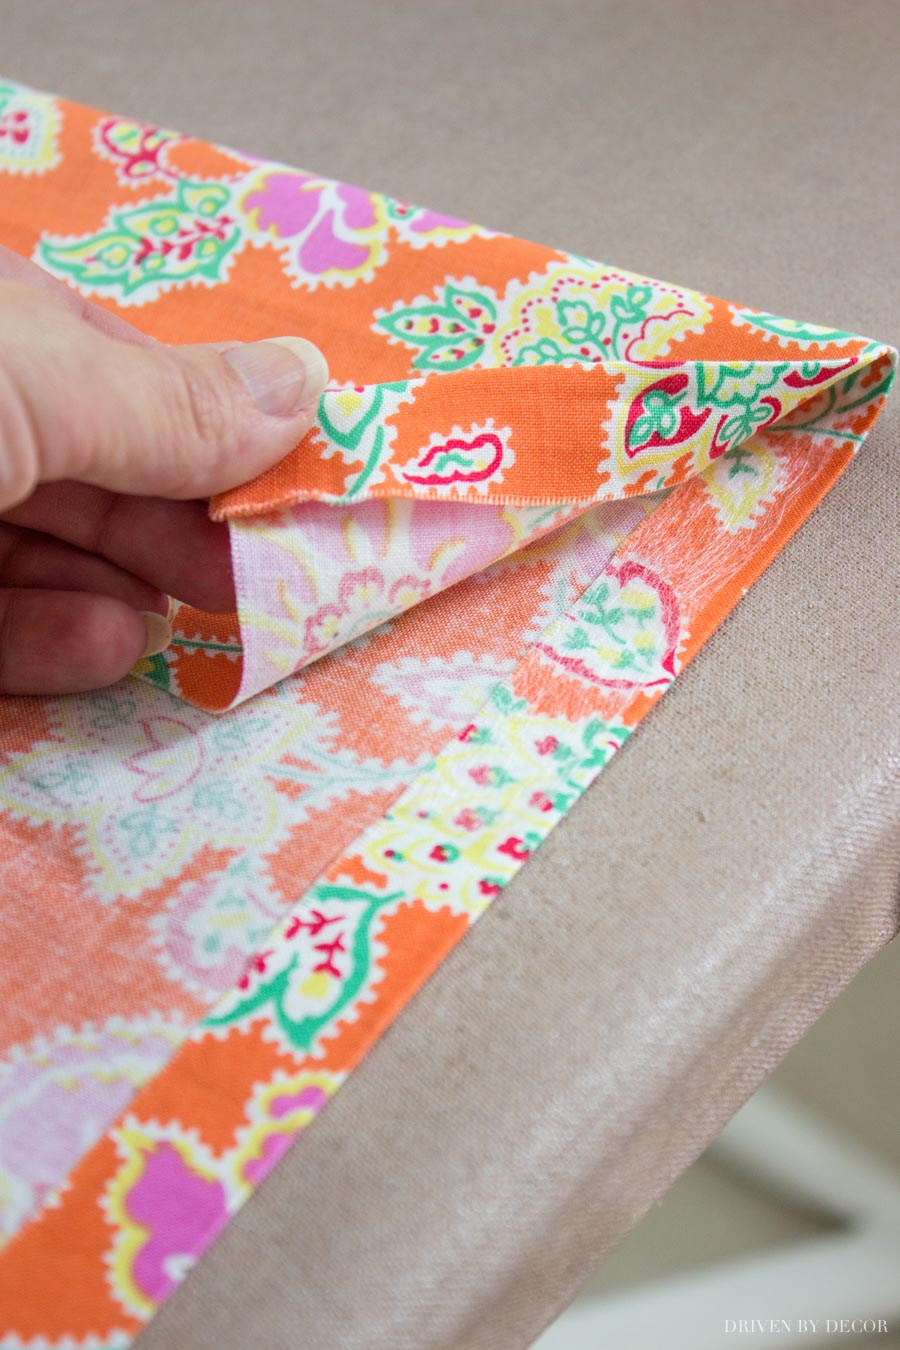 Using Stitch Witchery to create a no sew book cover